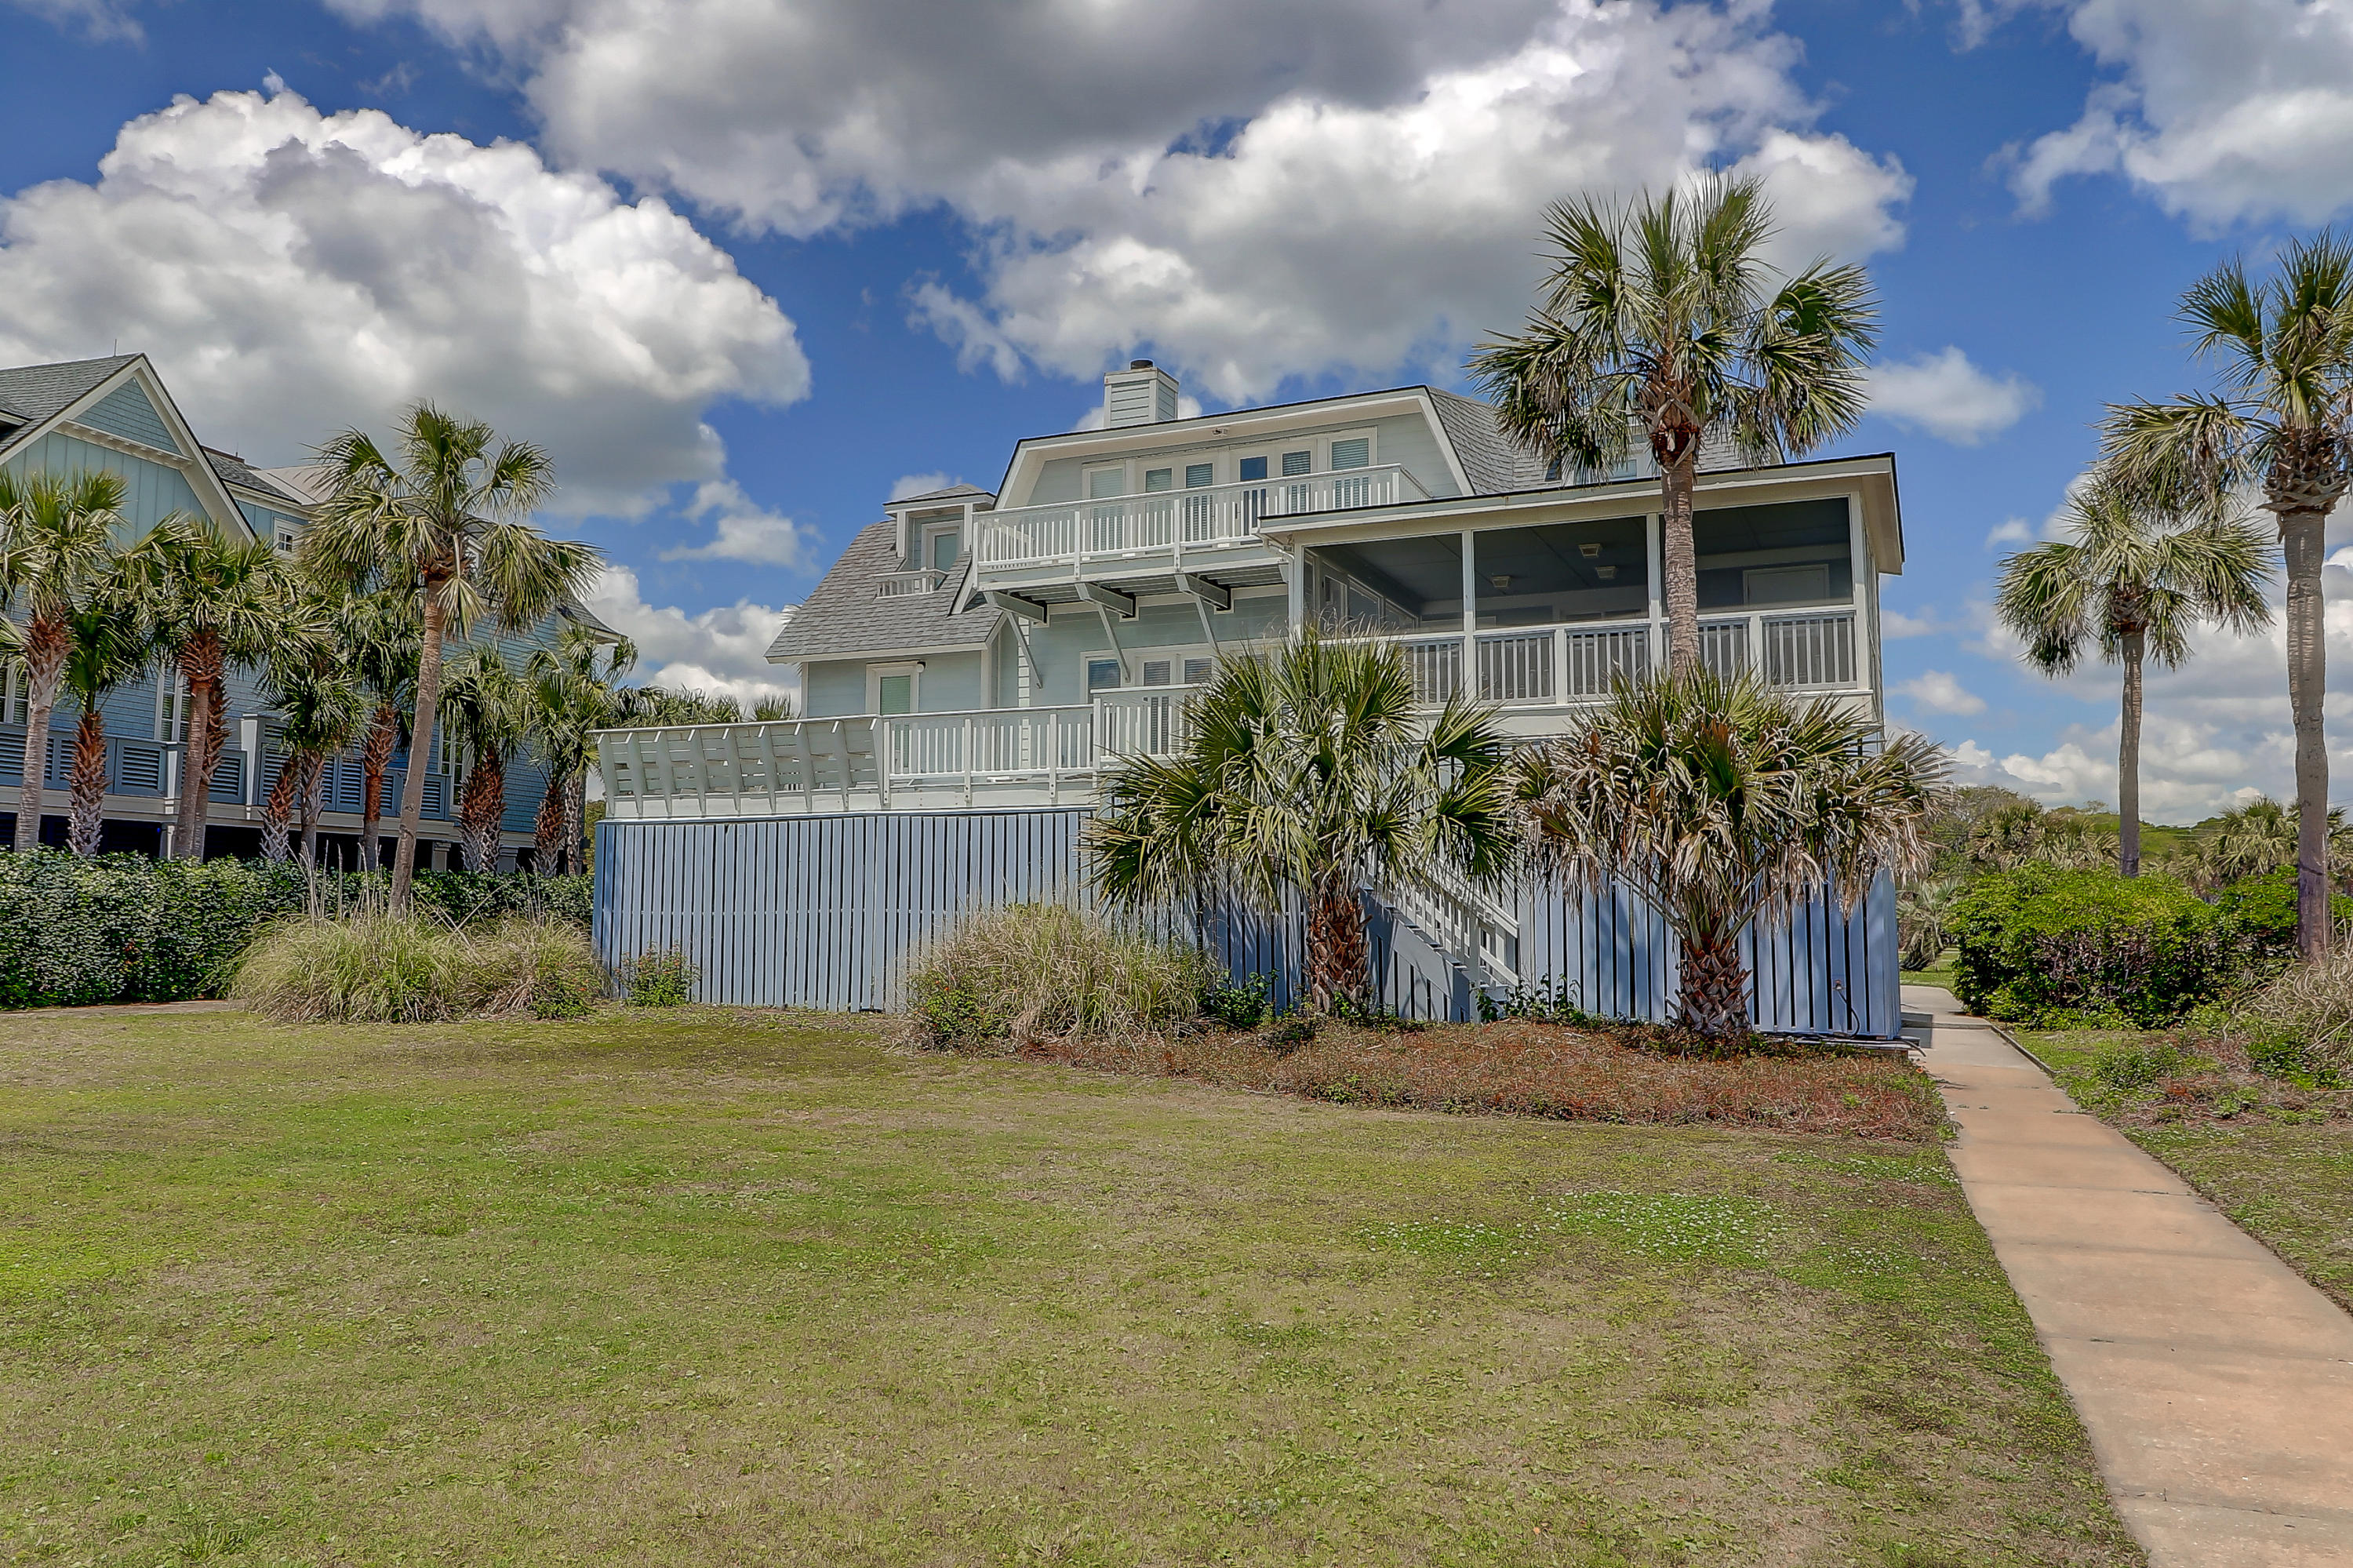 Isle of Palms Homes For Sale - 1 47th (1/13th), Isle of Palms, SC - 60